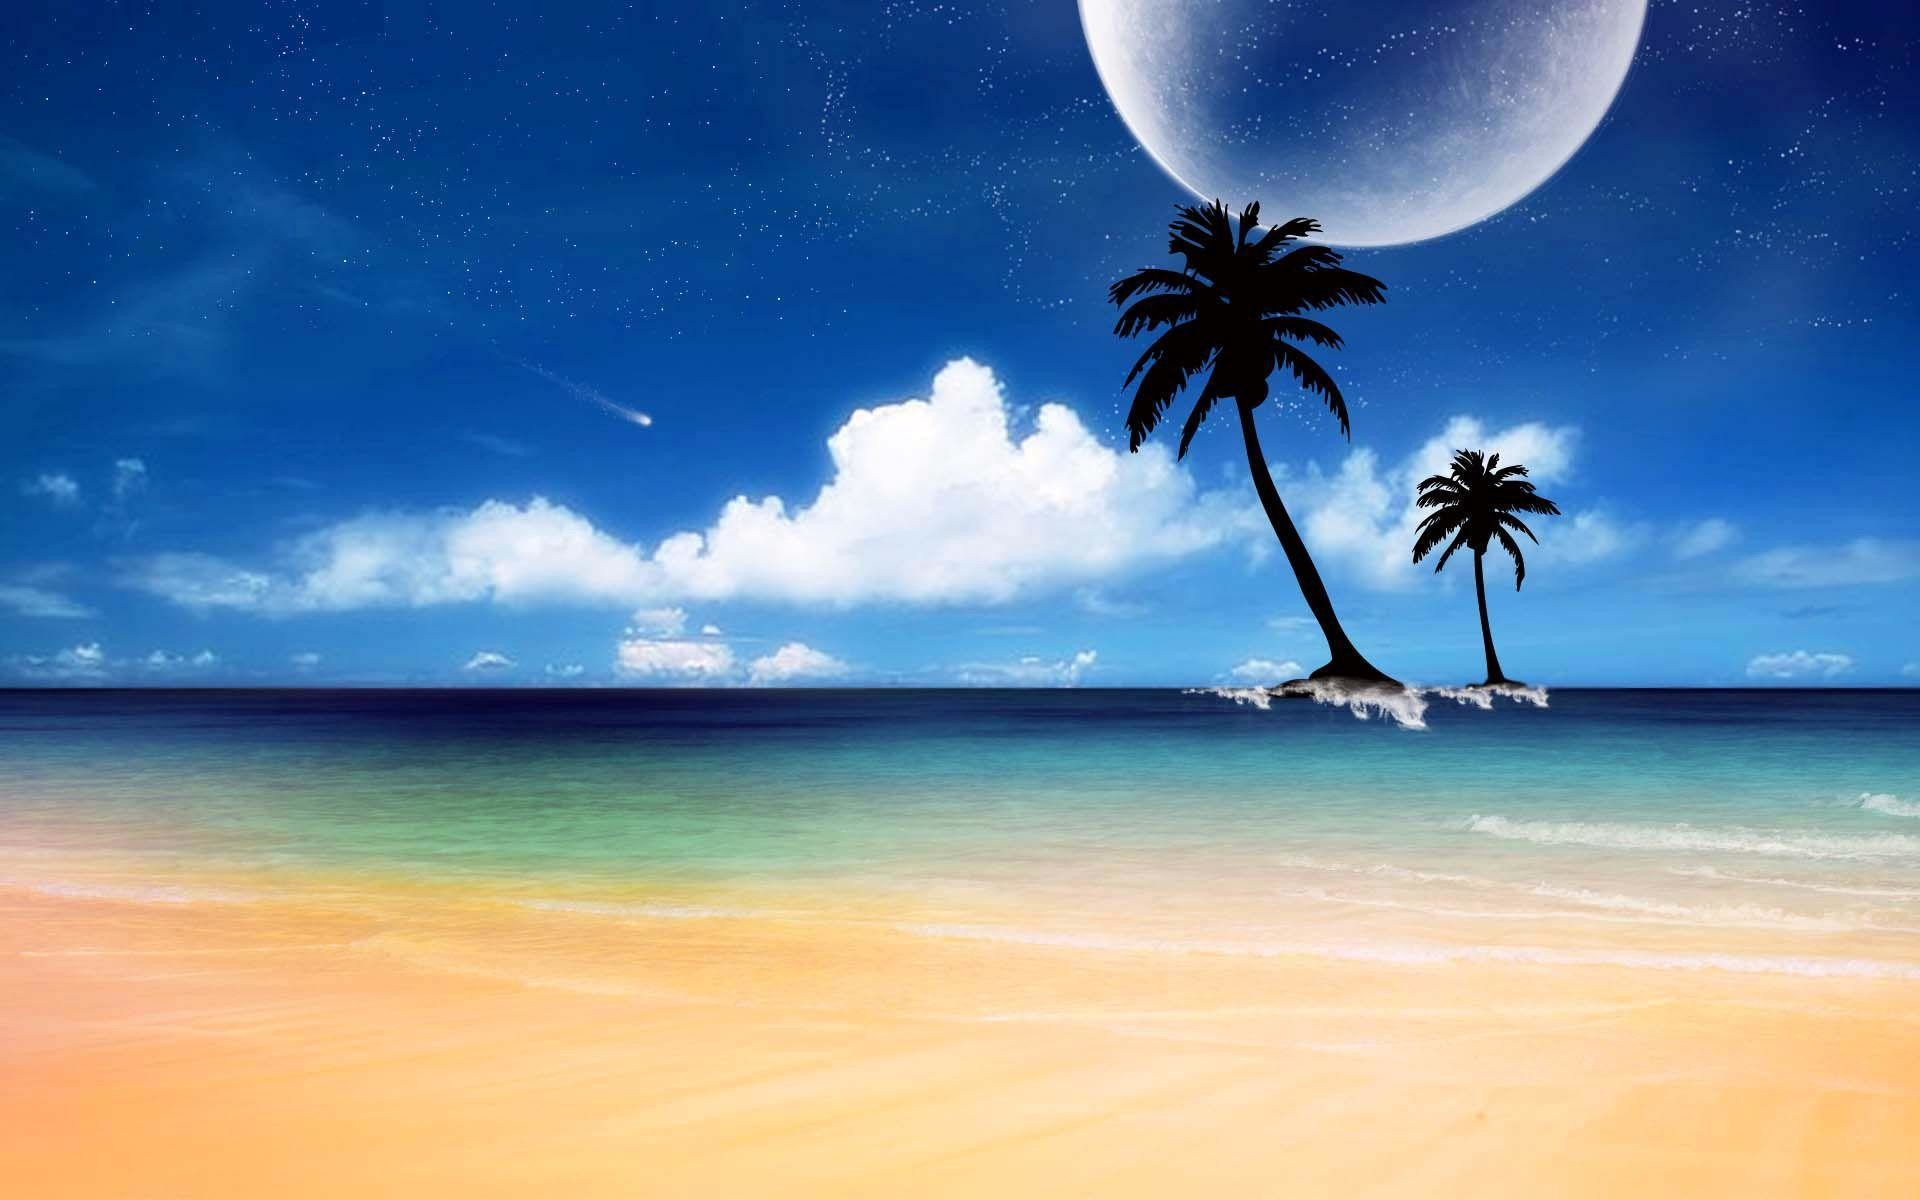 PreviousNext. Previous Image Next Image. sunny day at the beach wallpaper  …